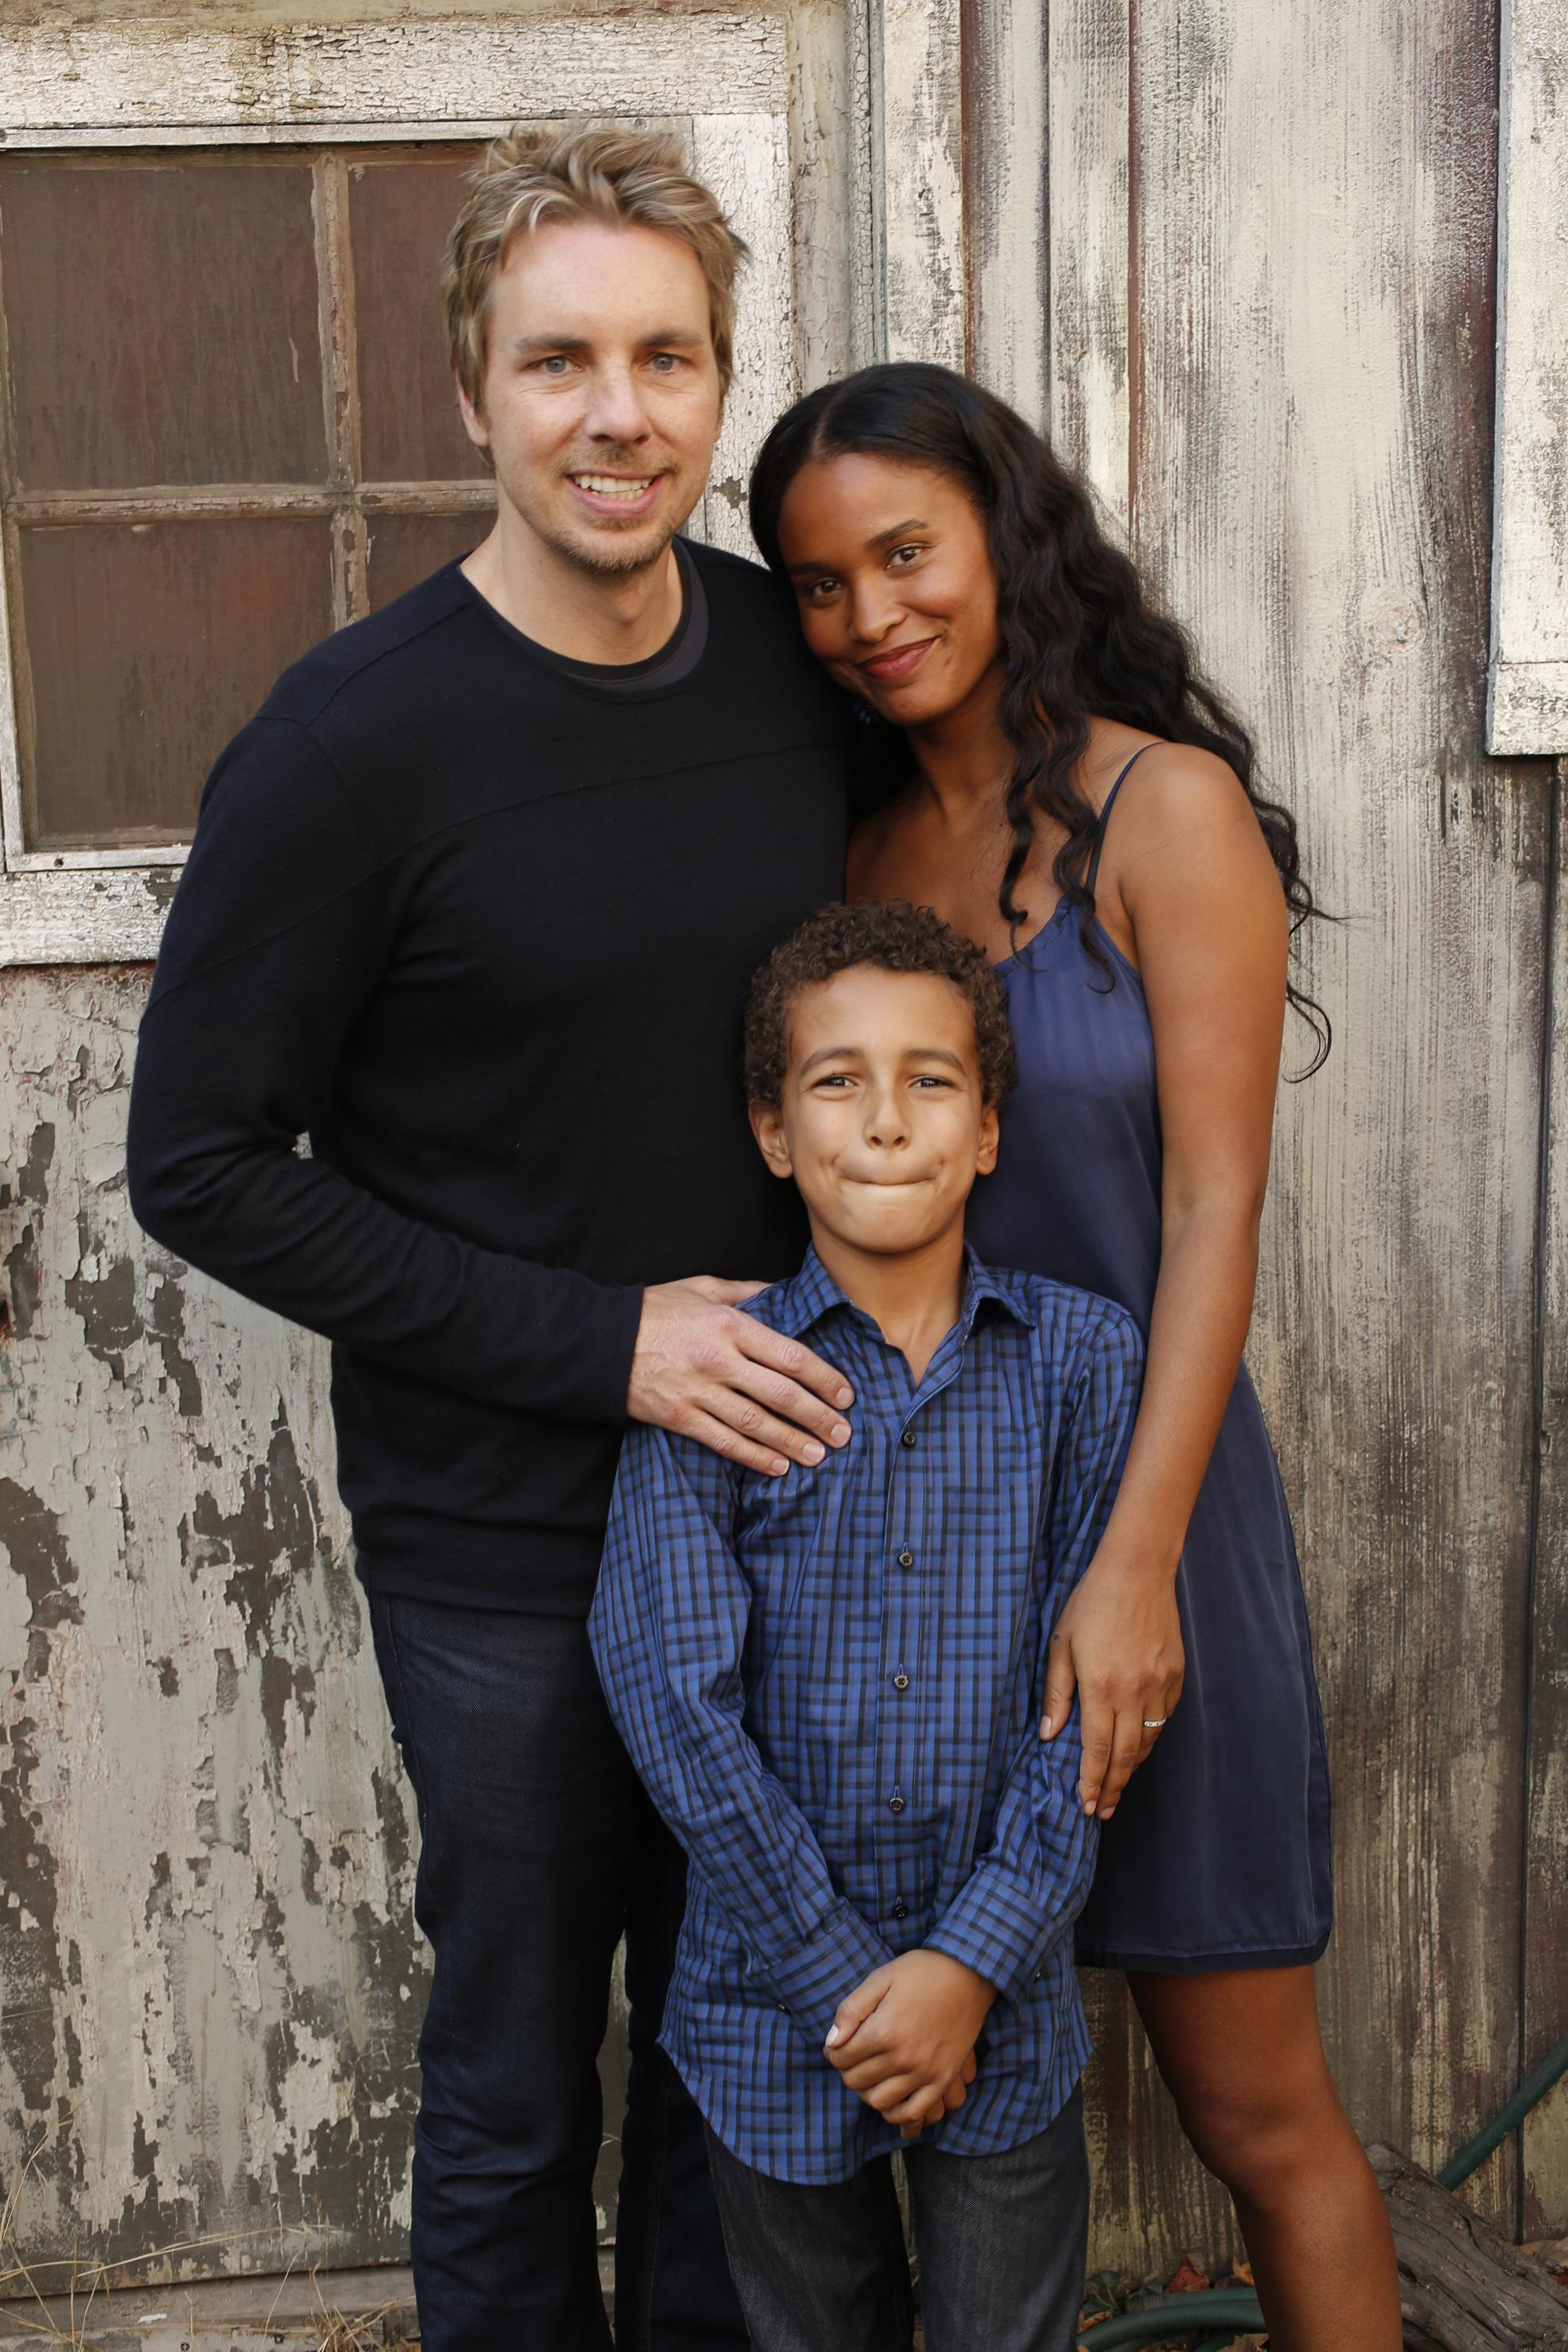 interracial family photos